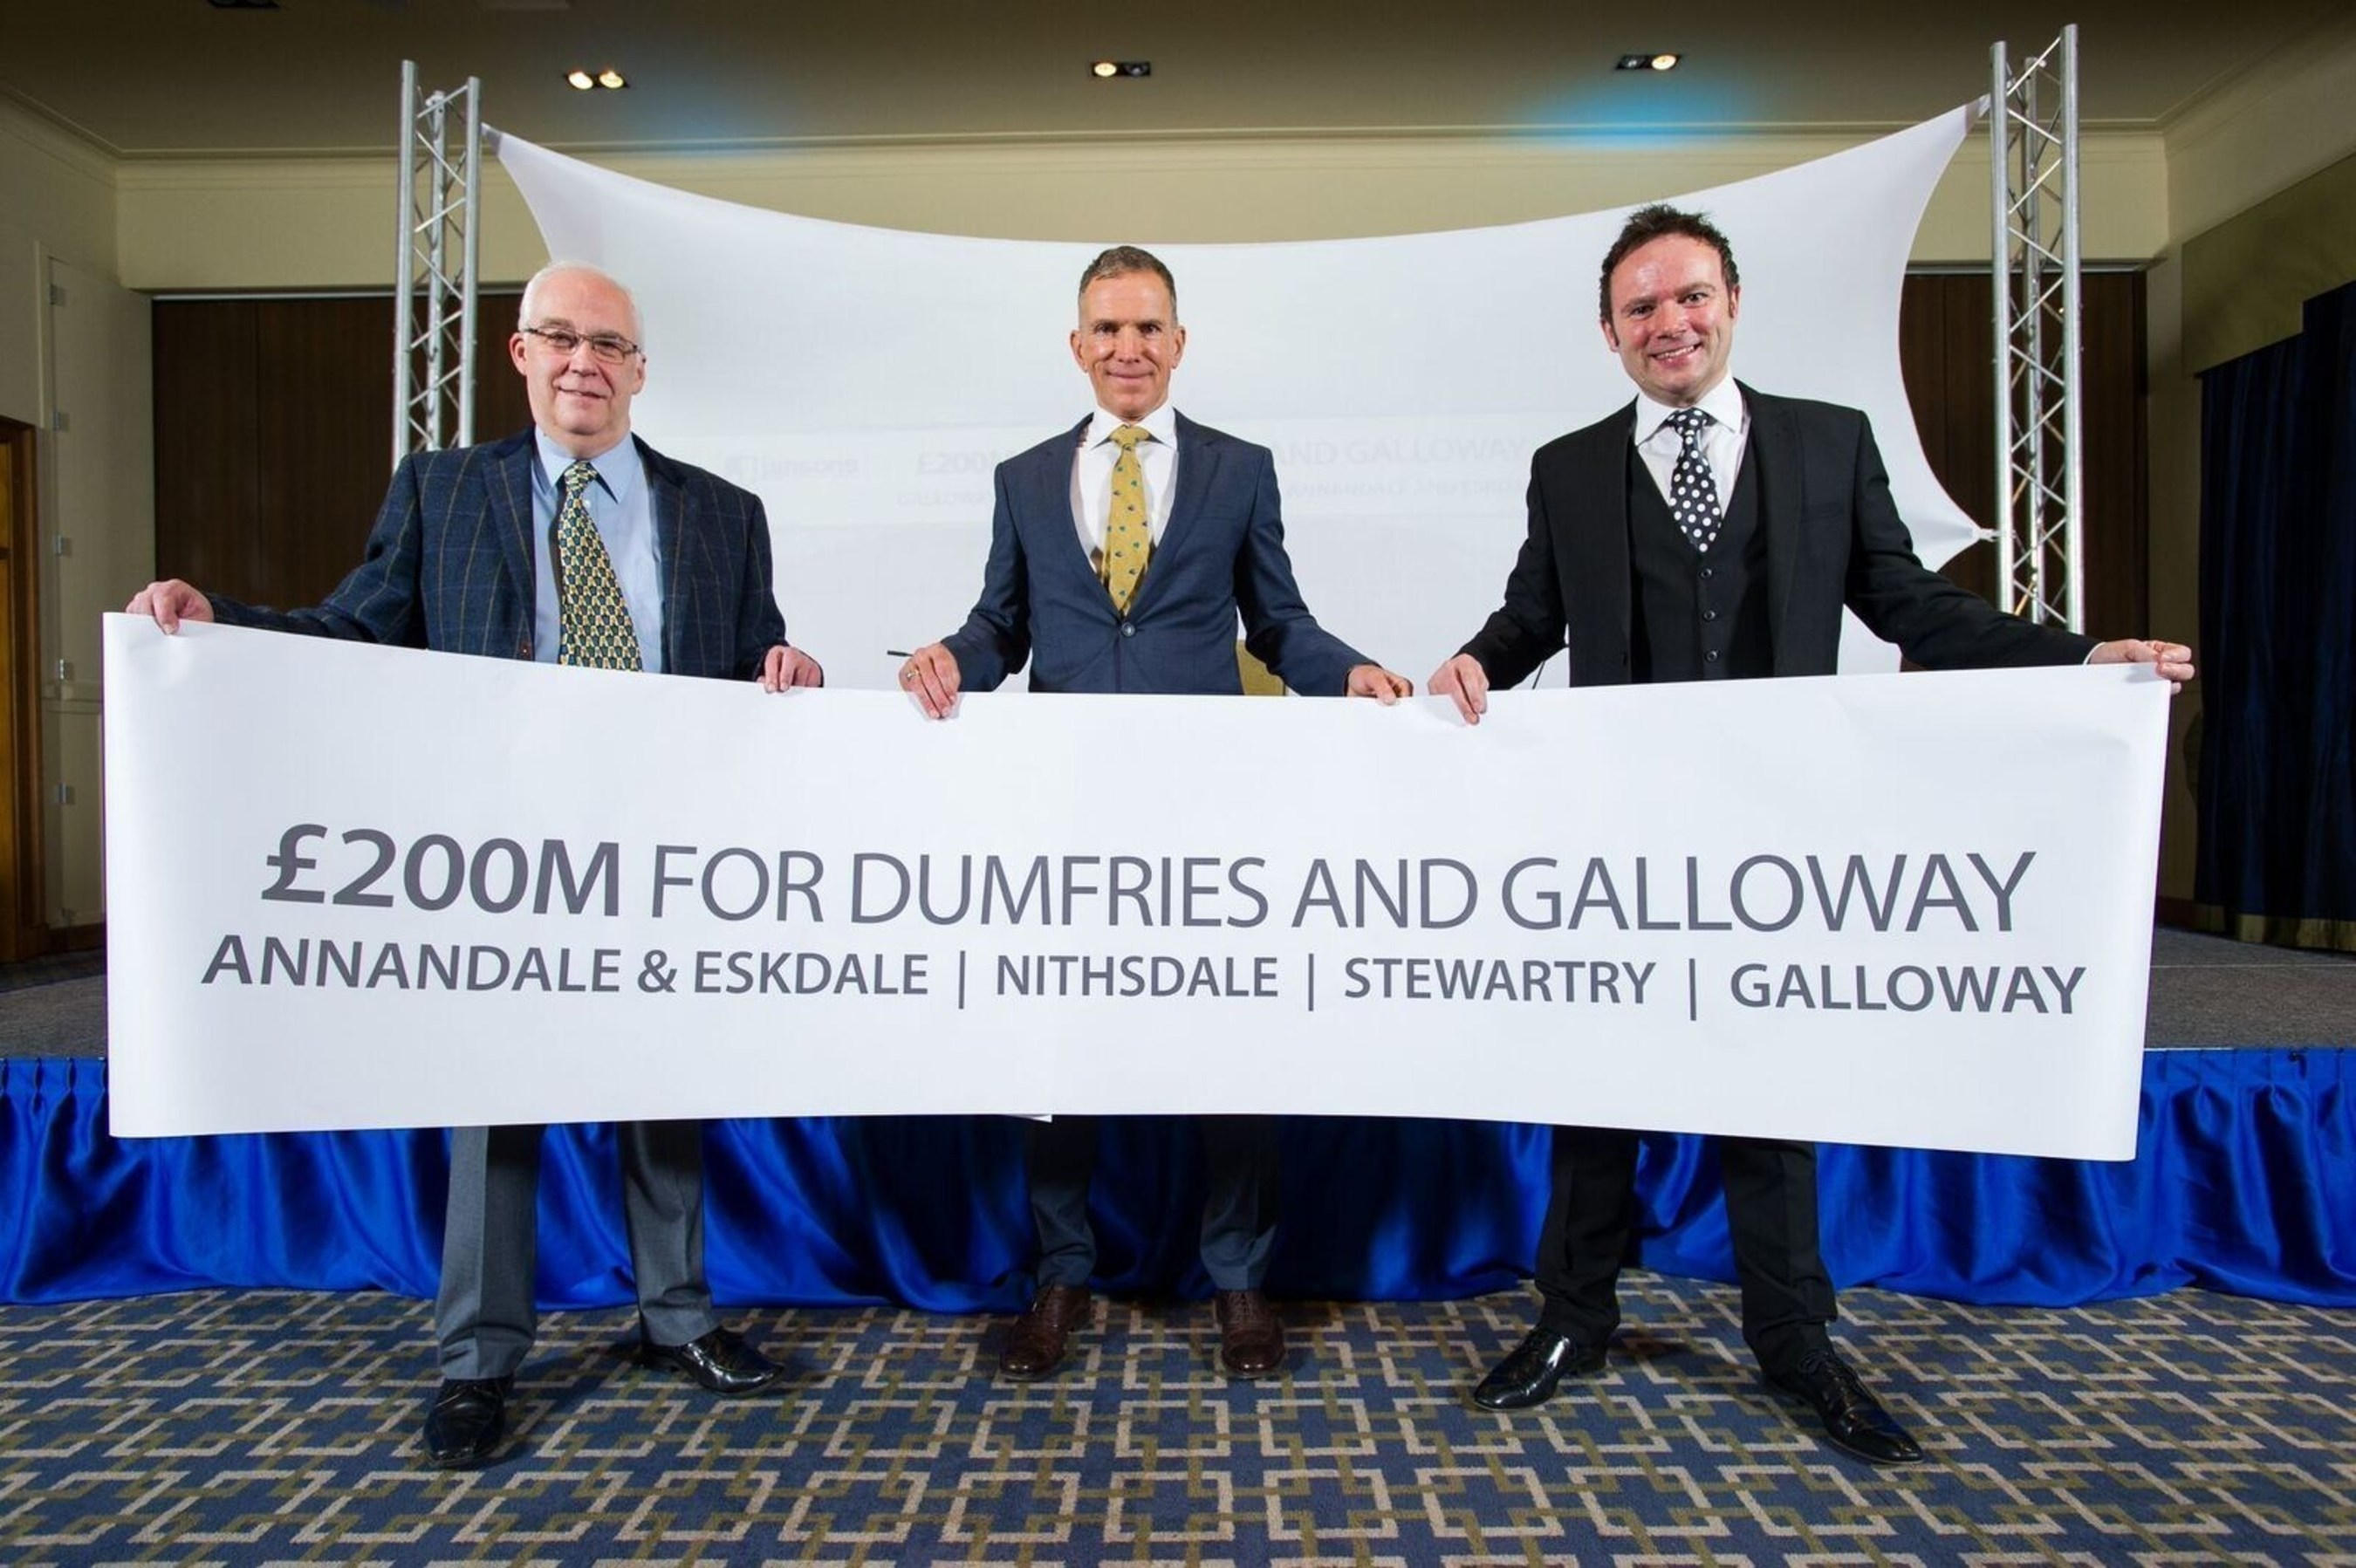 '200M Major Investment to Transform Dumfries and Galloway